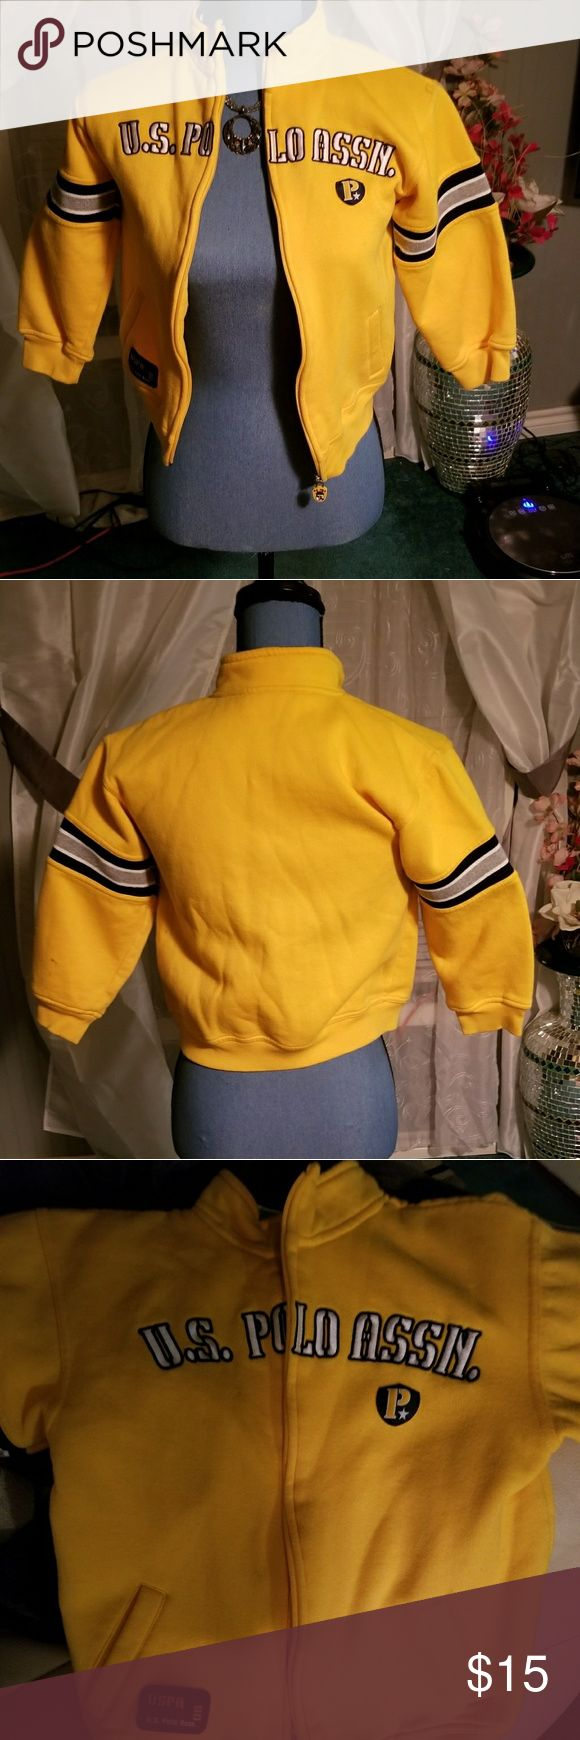 Kids Polo jacket Boys size 7 U.S. Polo Jacket like brand new well taken care of,  perfect conditon light weight but very warm Polo by Ralph Lauren Jackets & Coats